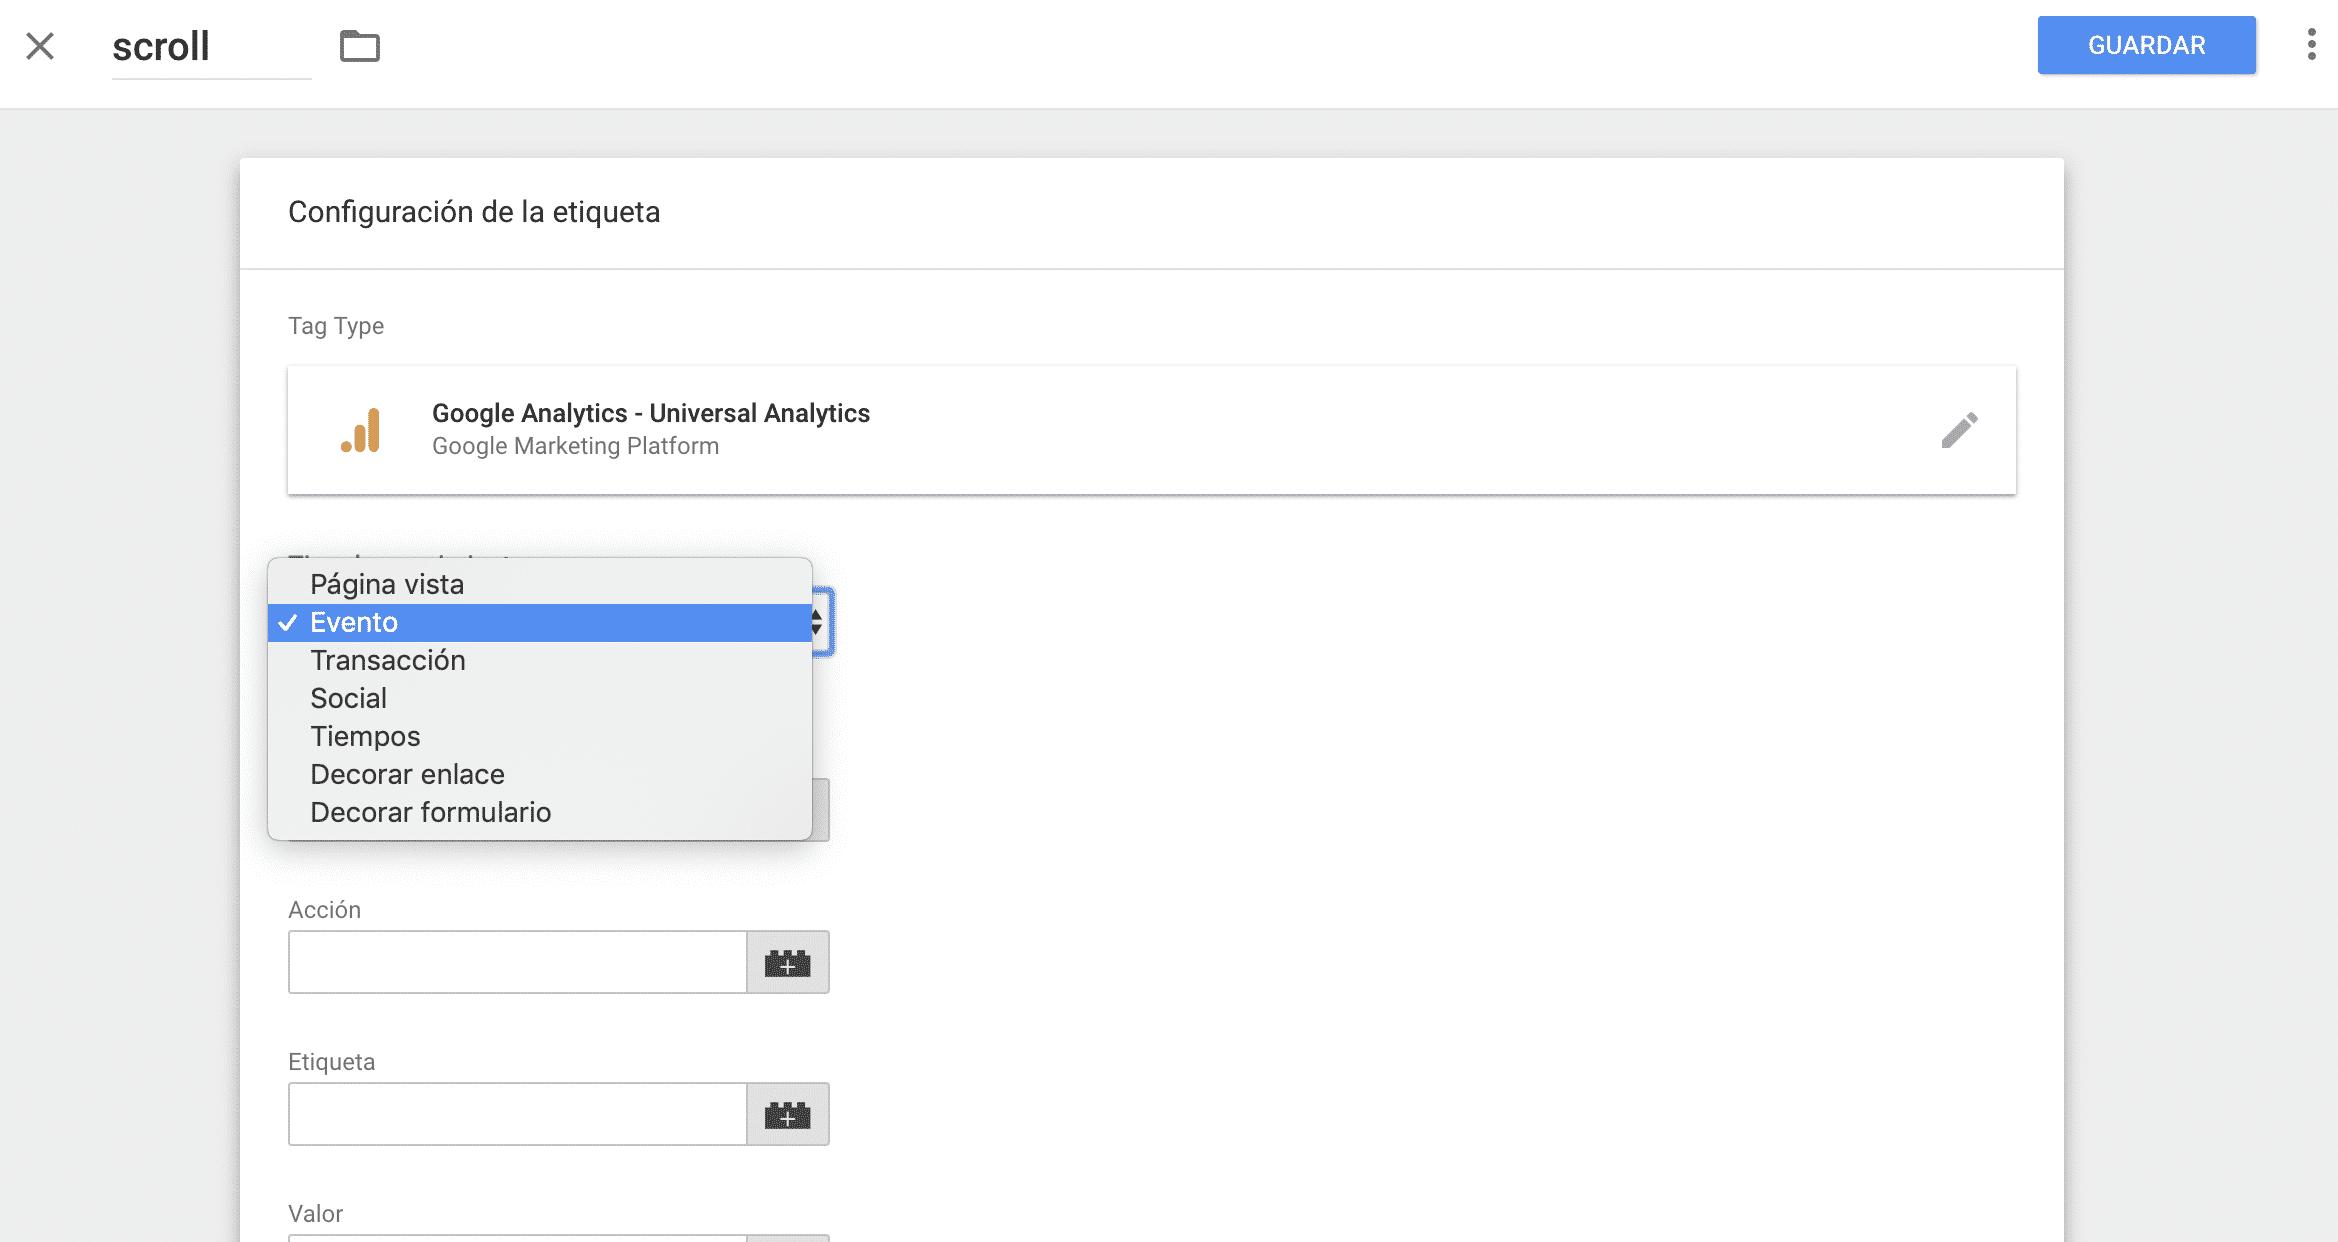 Cómo crear un evento de scroll en Google Tag Manager 6